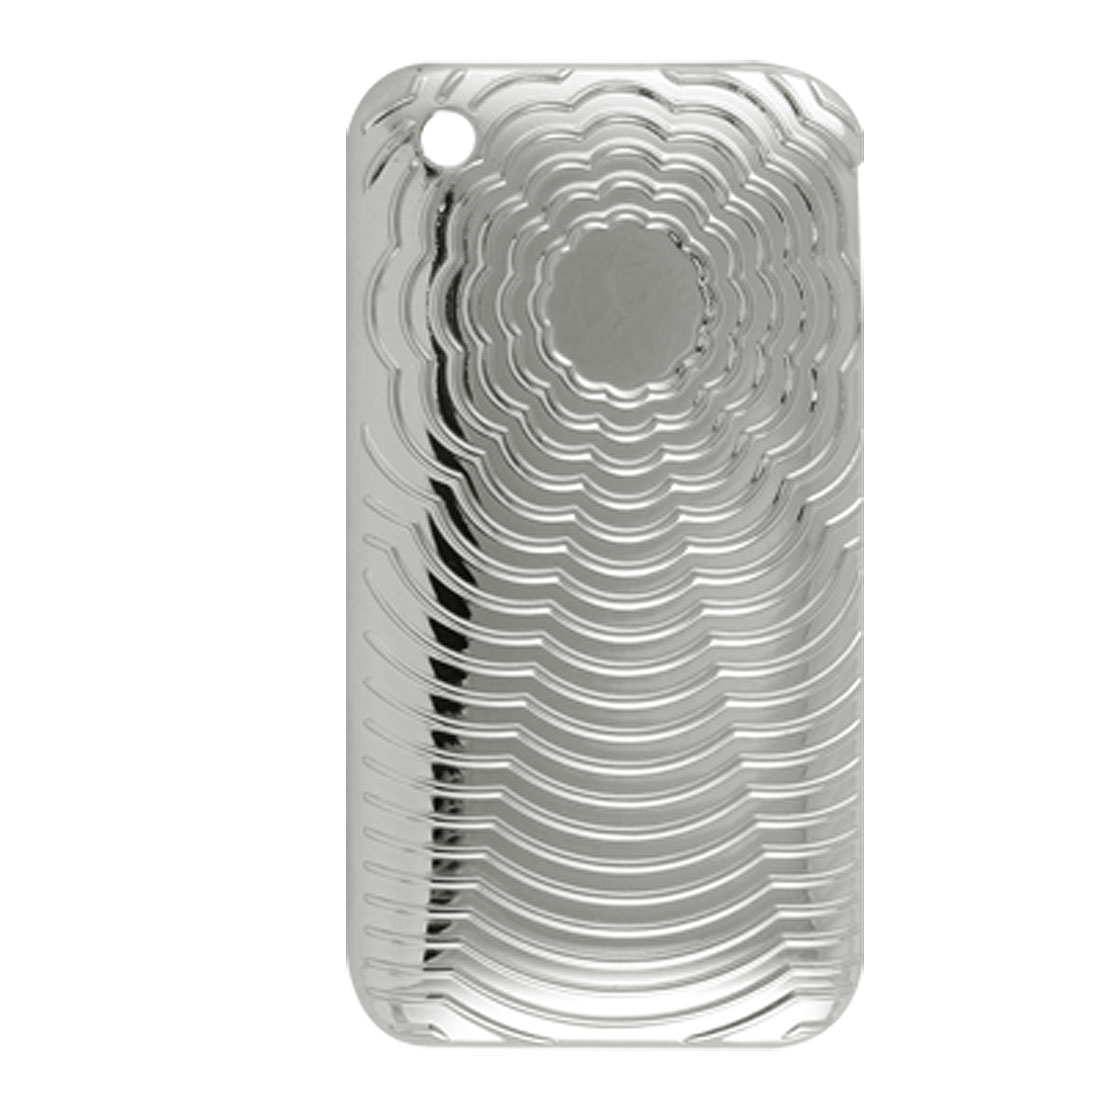 Hard Plastic Curve External Nonslip Back Case for iPhone 3GS Silver Tone